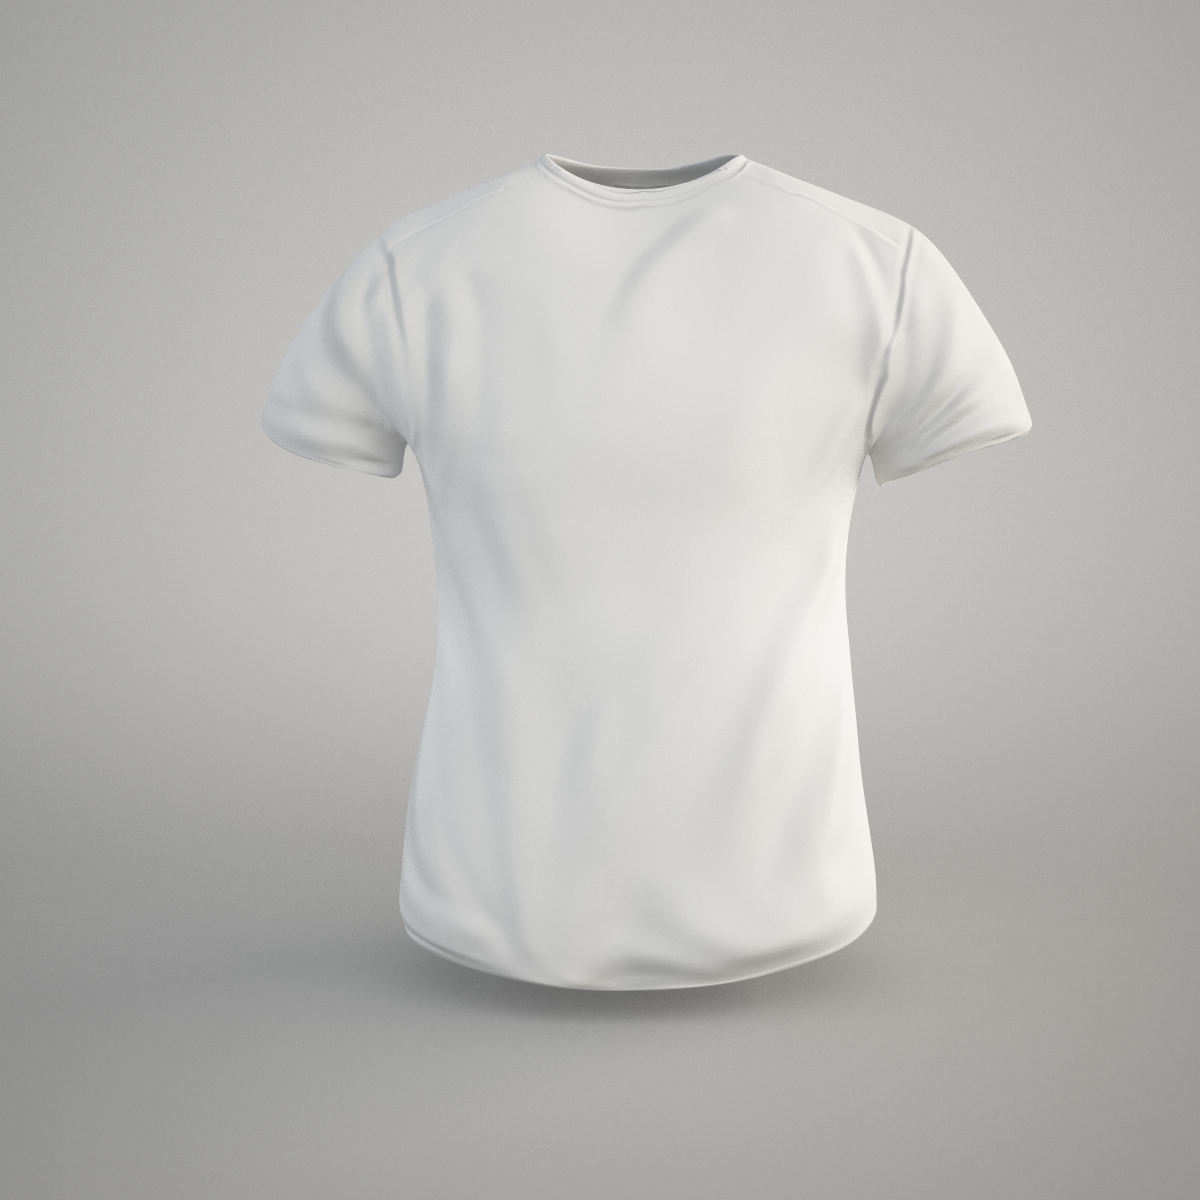 3d model t shirt vr ar low poly obj fbx c4d for T shirt template with model